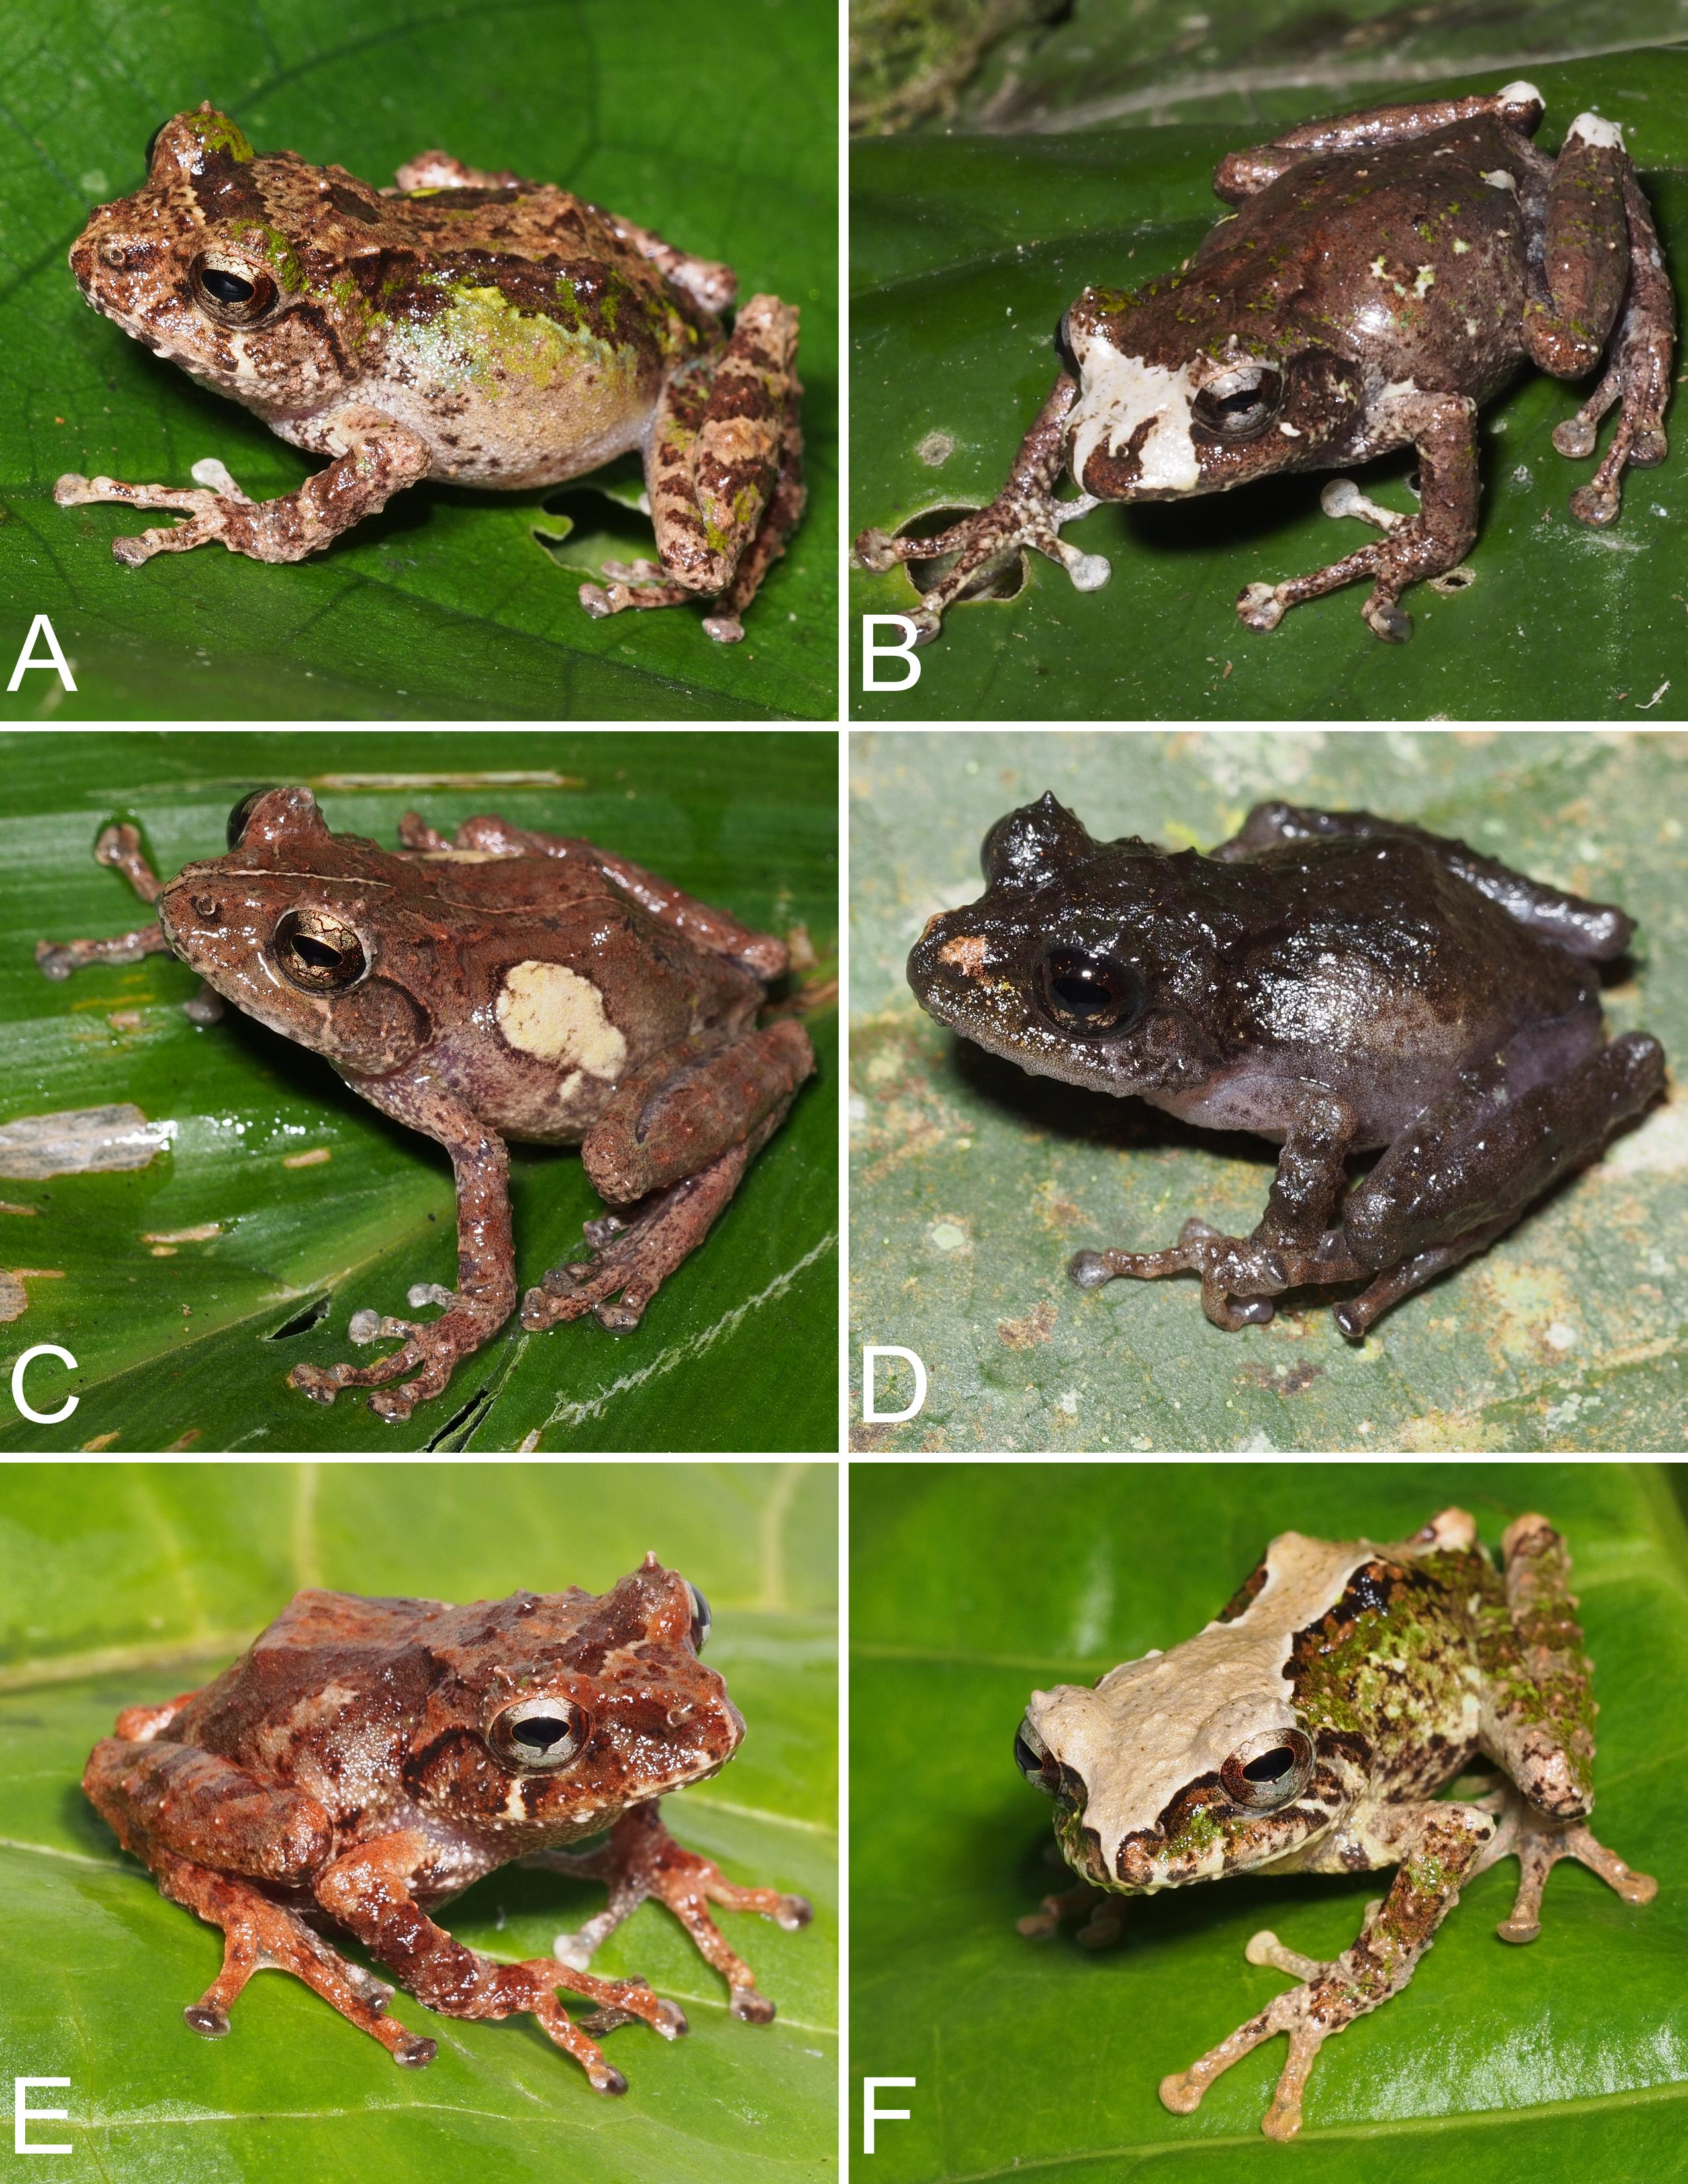 A Taxonomic Revision of the Philautus (Anura: Rhacophoridae) of